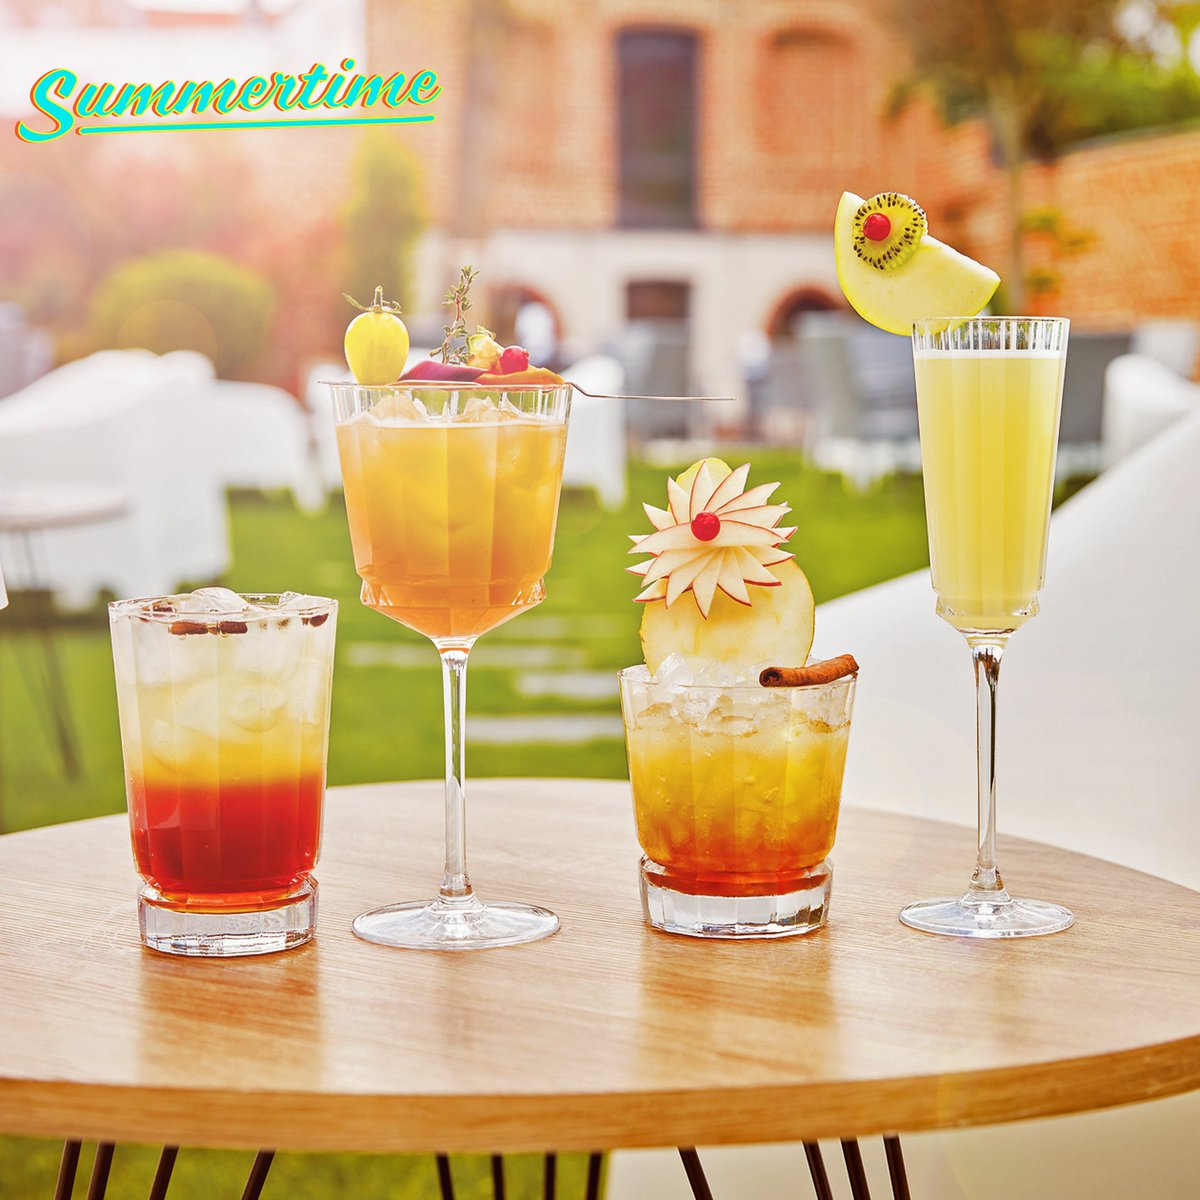 Arc Tableware UK (@arctableware) Today marks the official start of summer! These summery cocktails from the mastermind known as @victordelpierre certainly ... & Images and video about Arc Tableware UK (@arctableware) user on ...